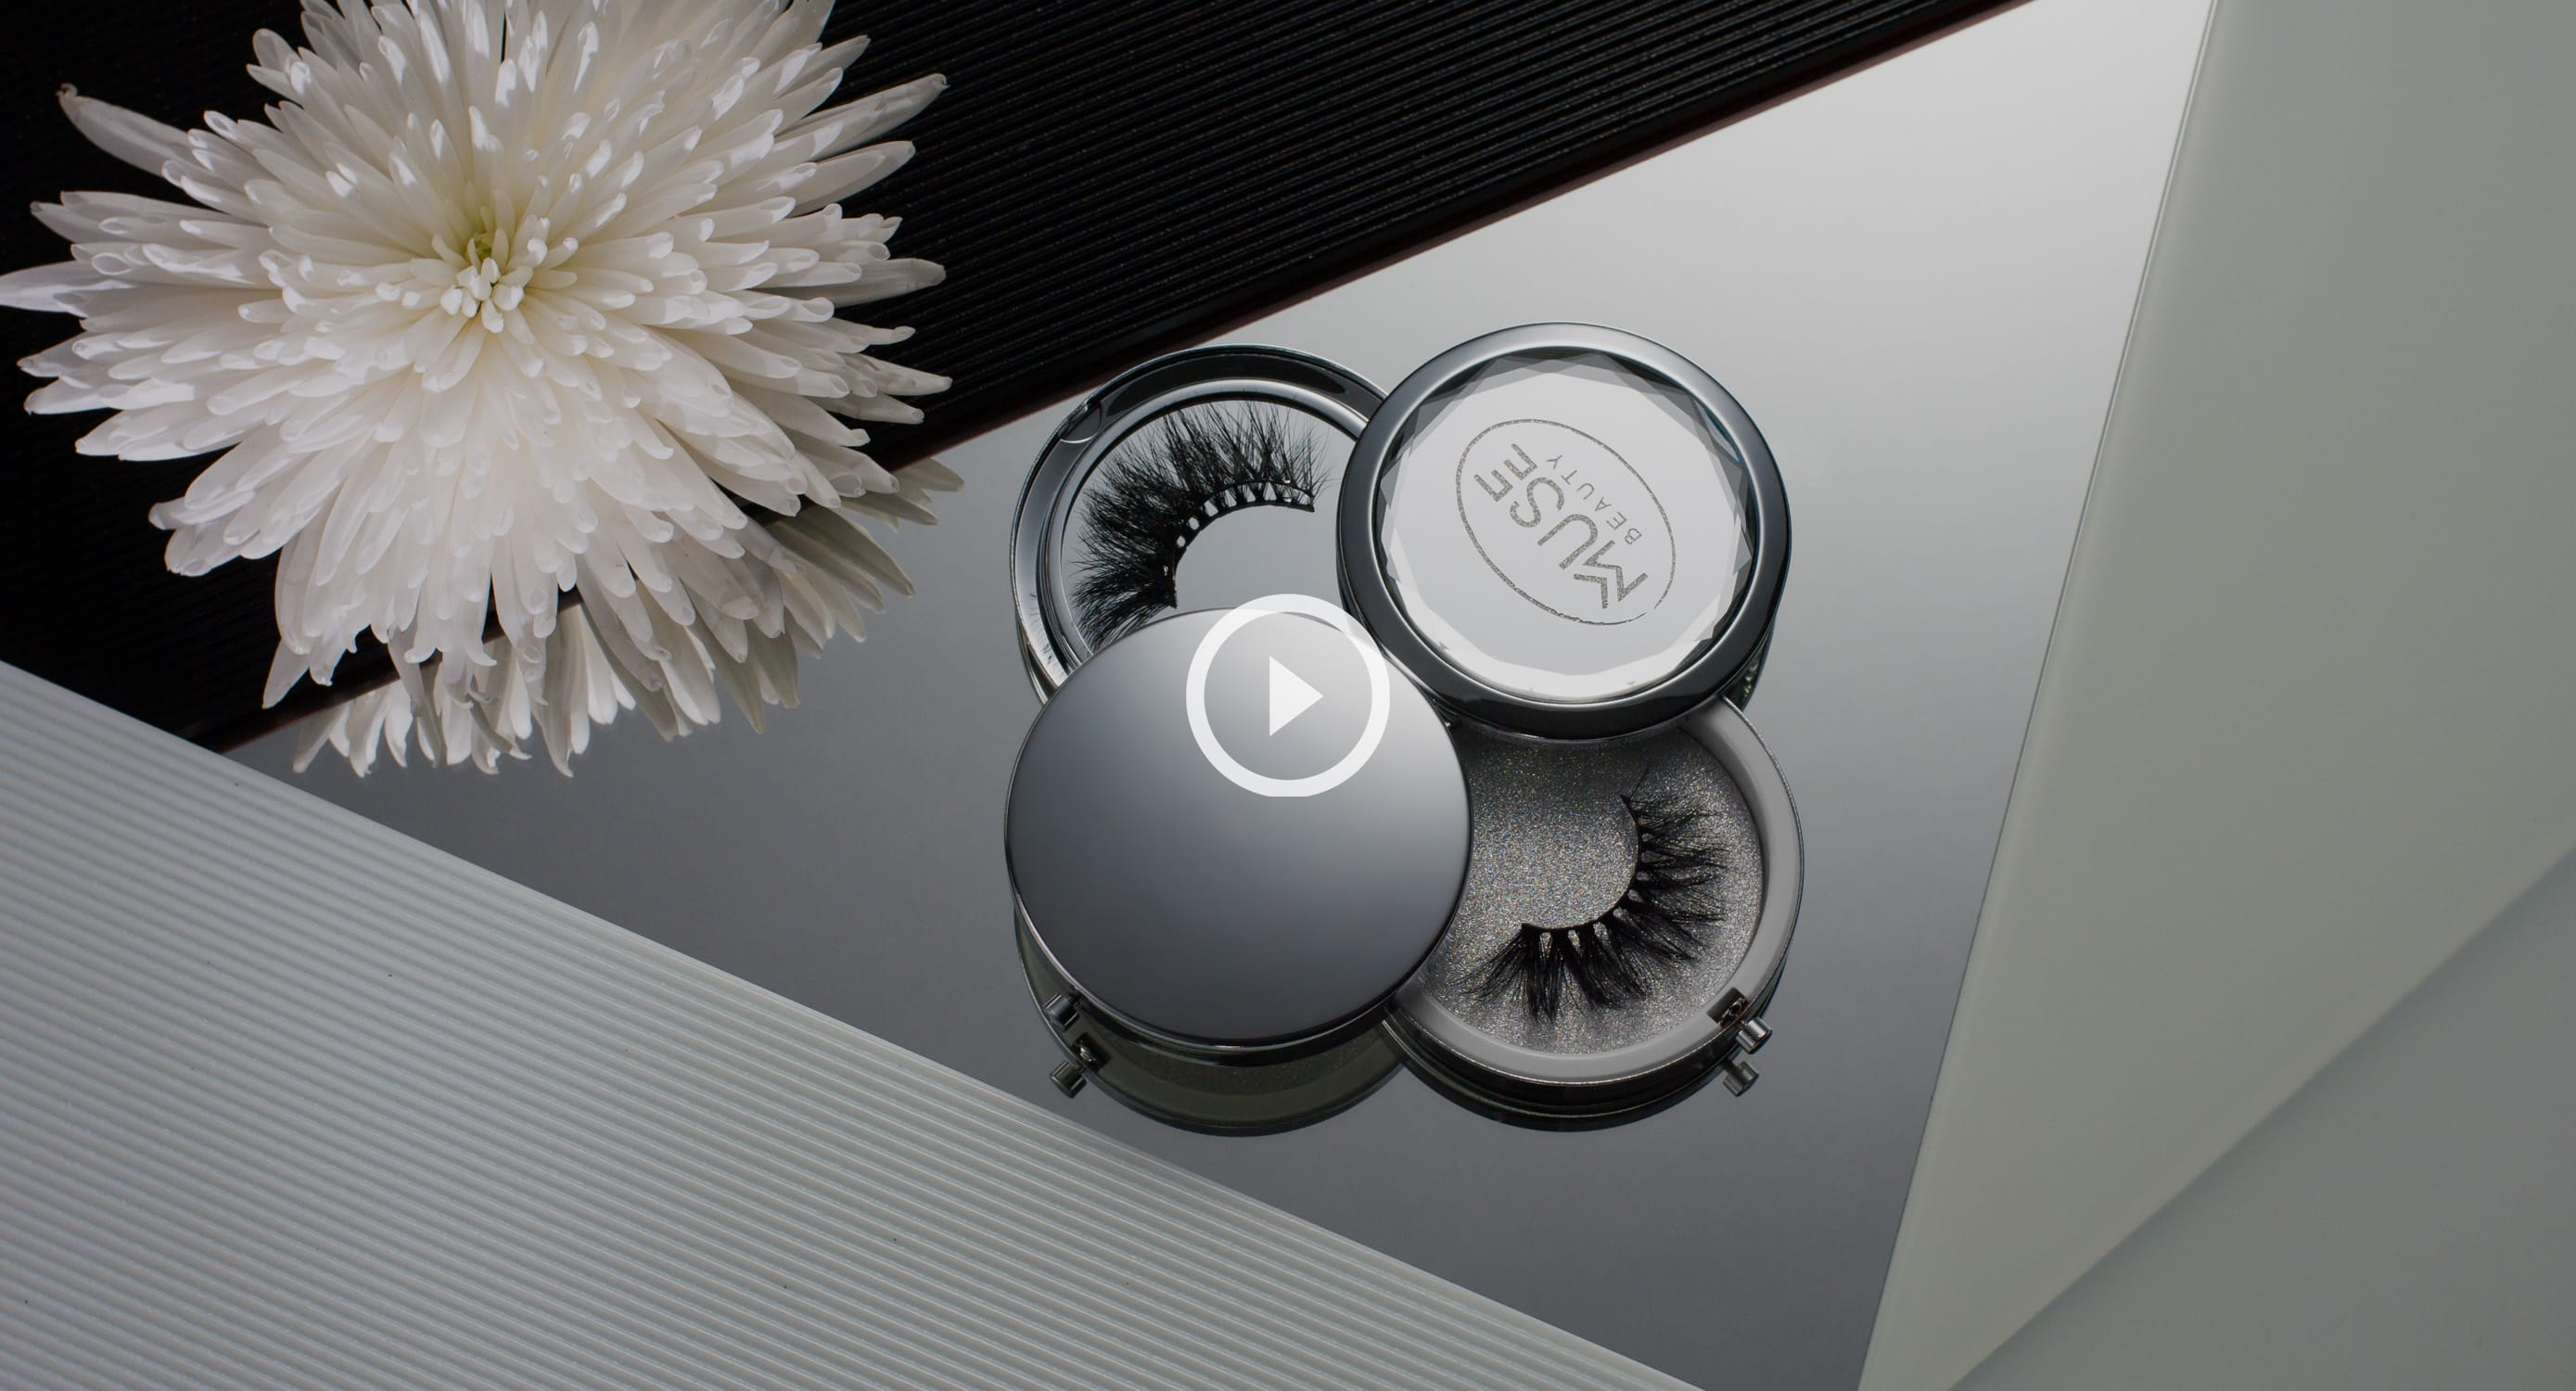 Beauty Product Video for Muse Beauty, USA